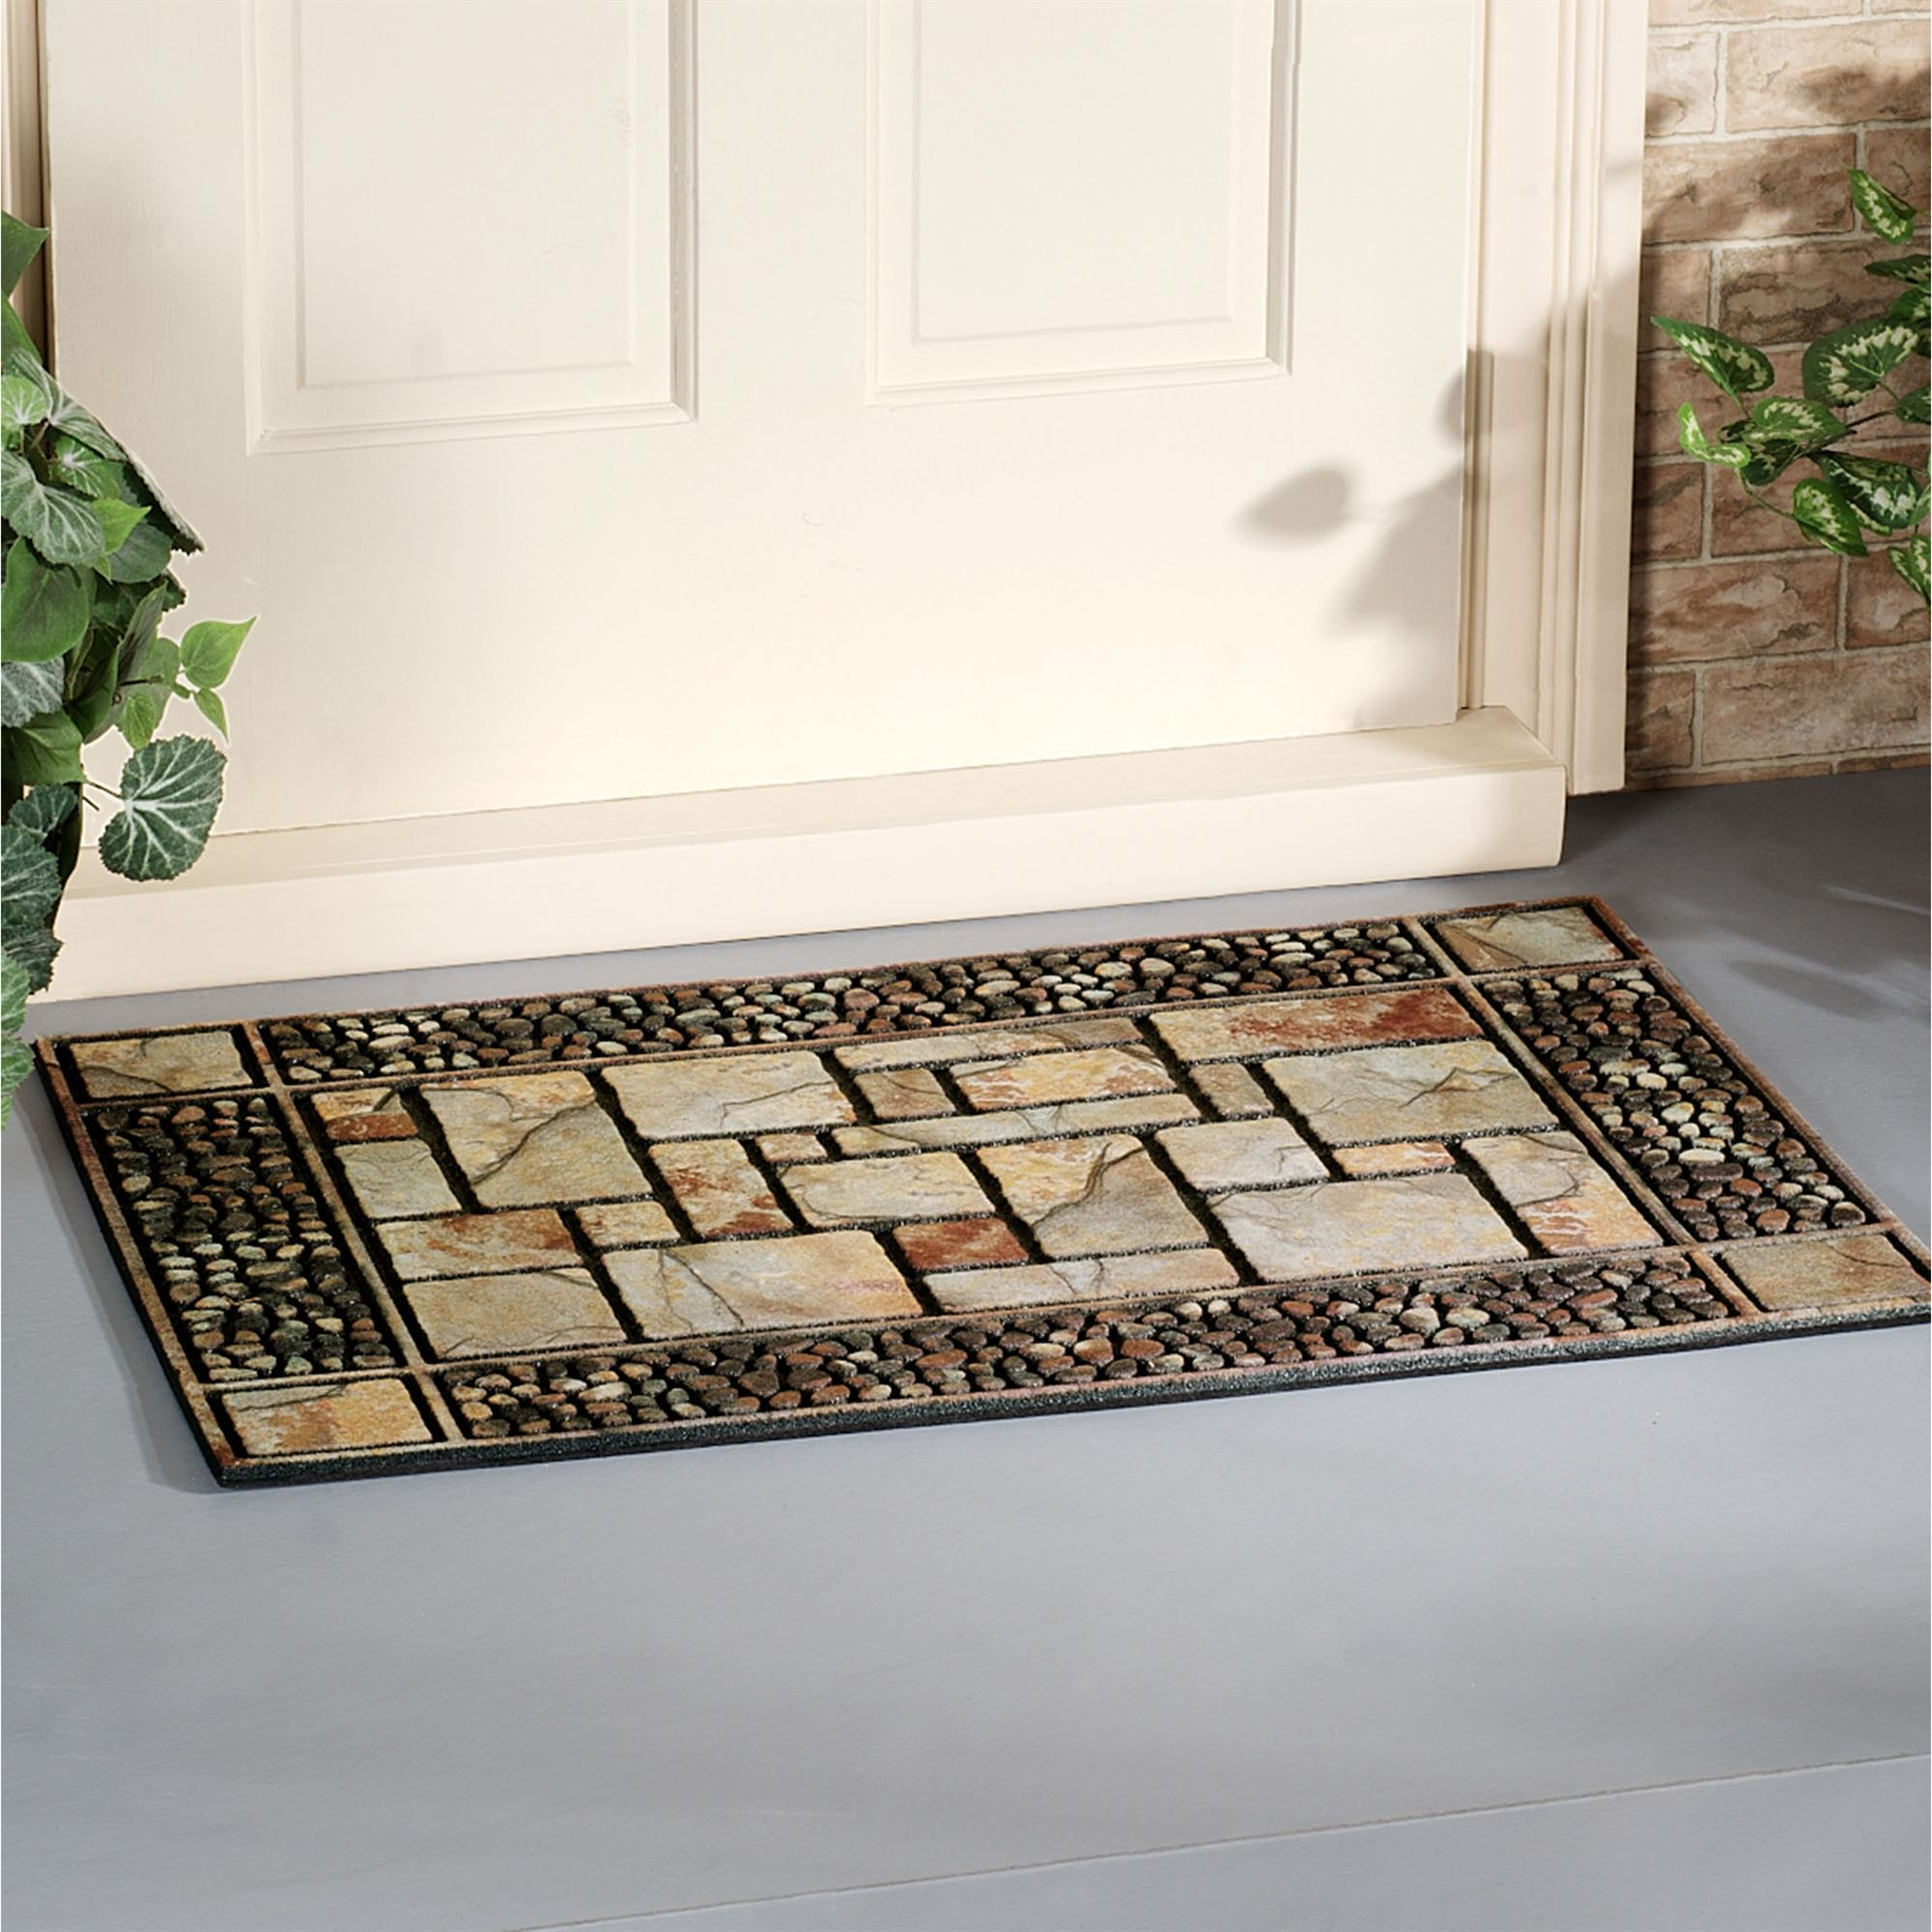 Patio Stone Doormat